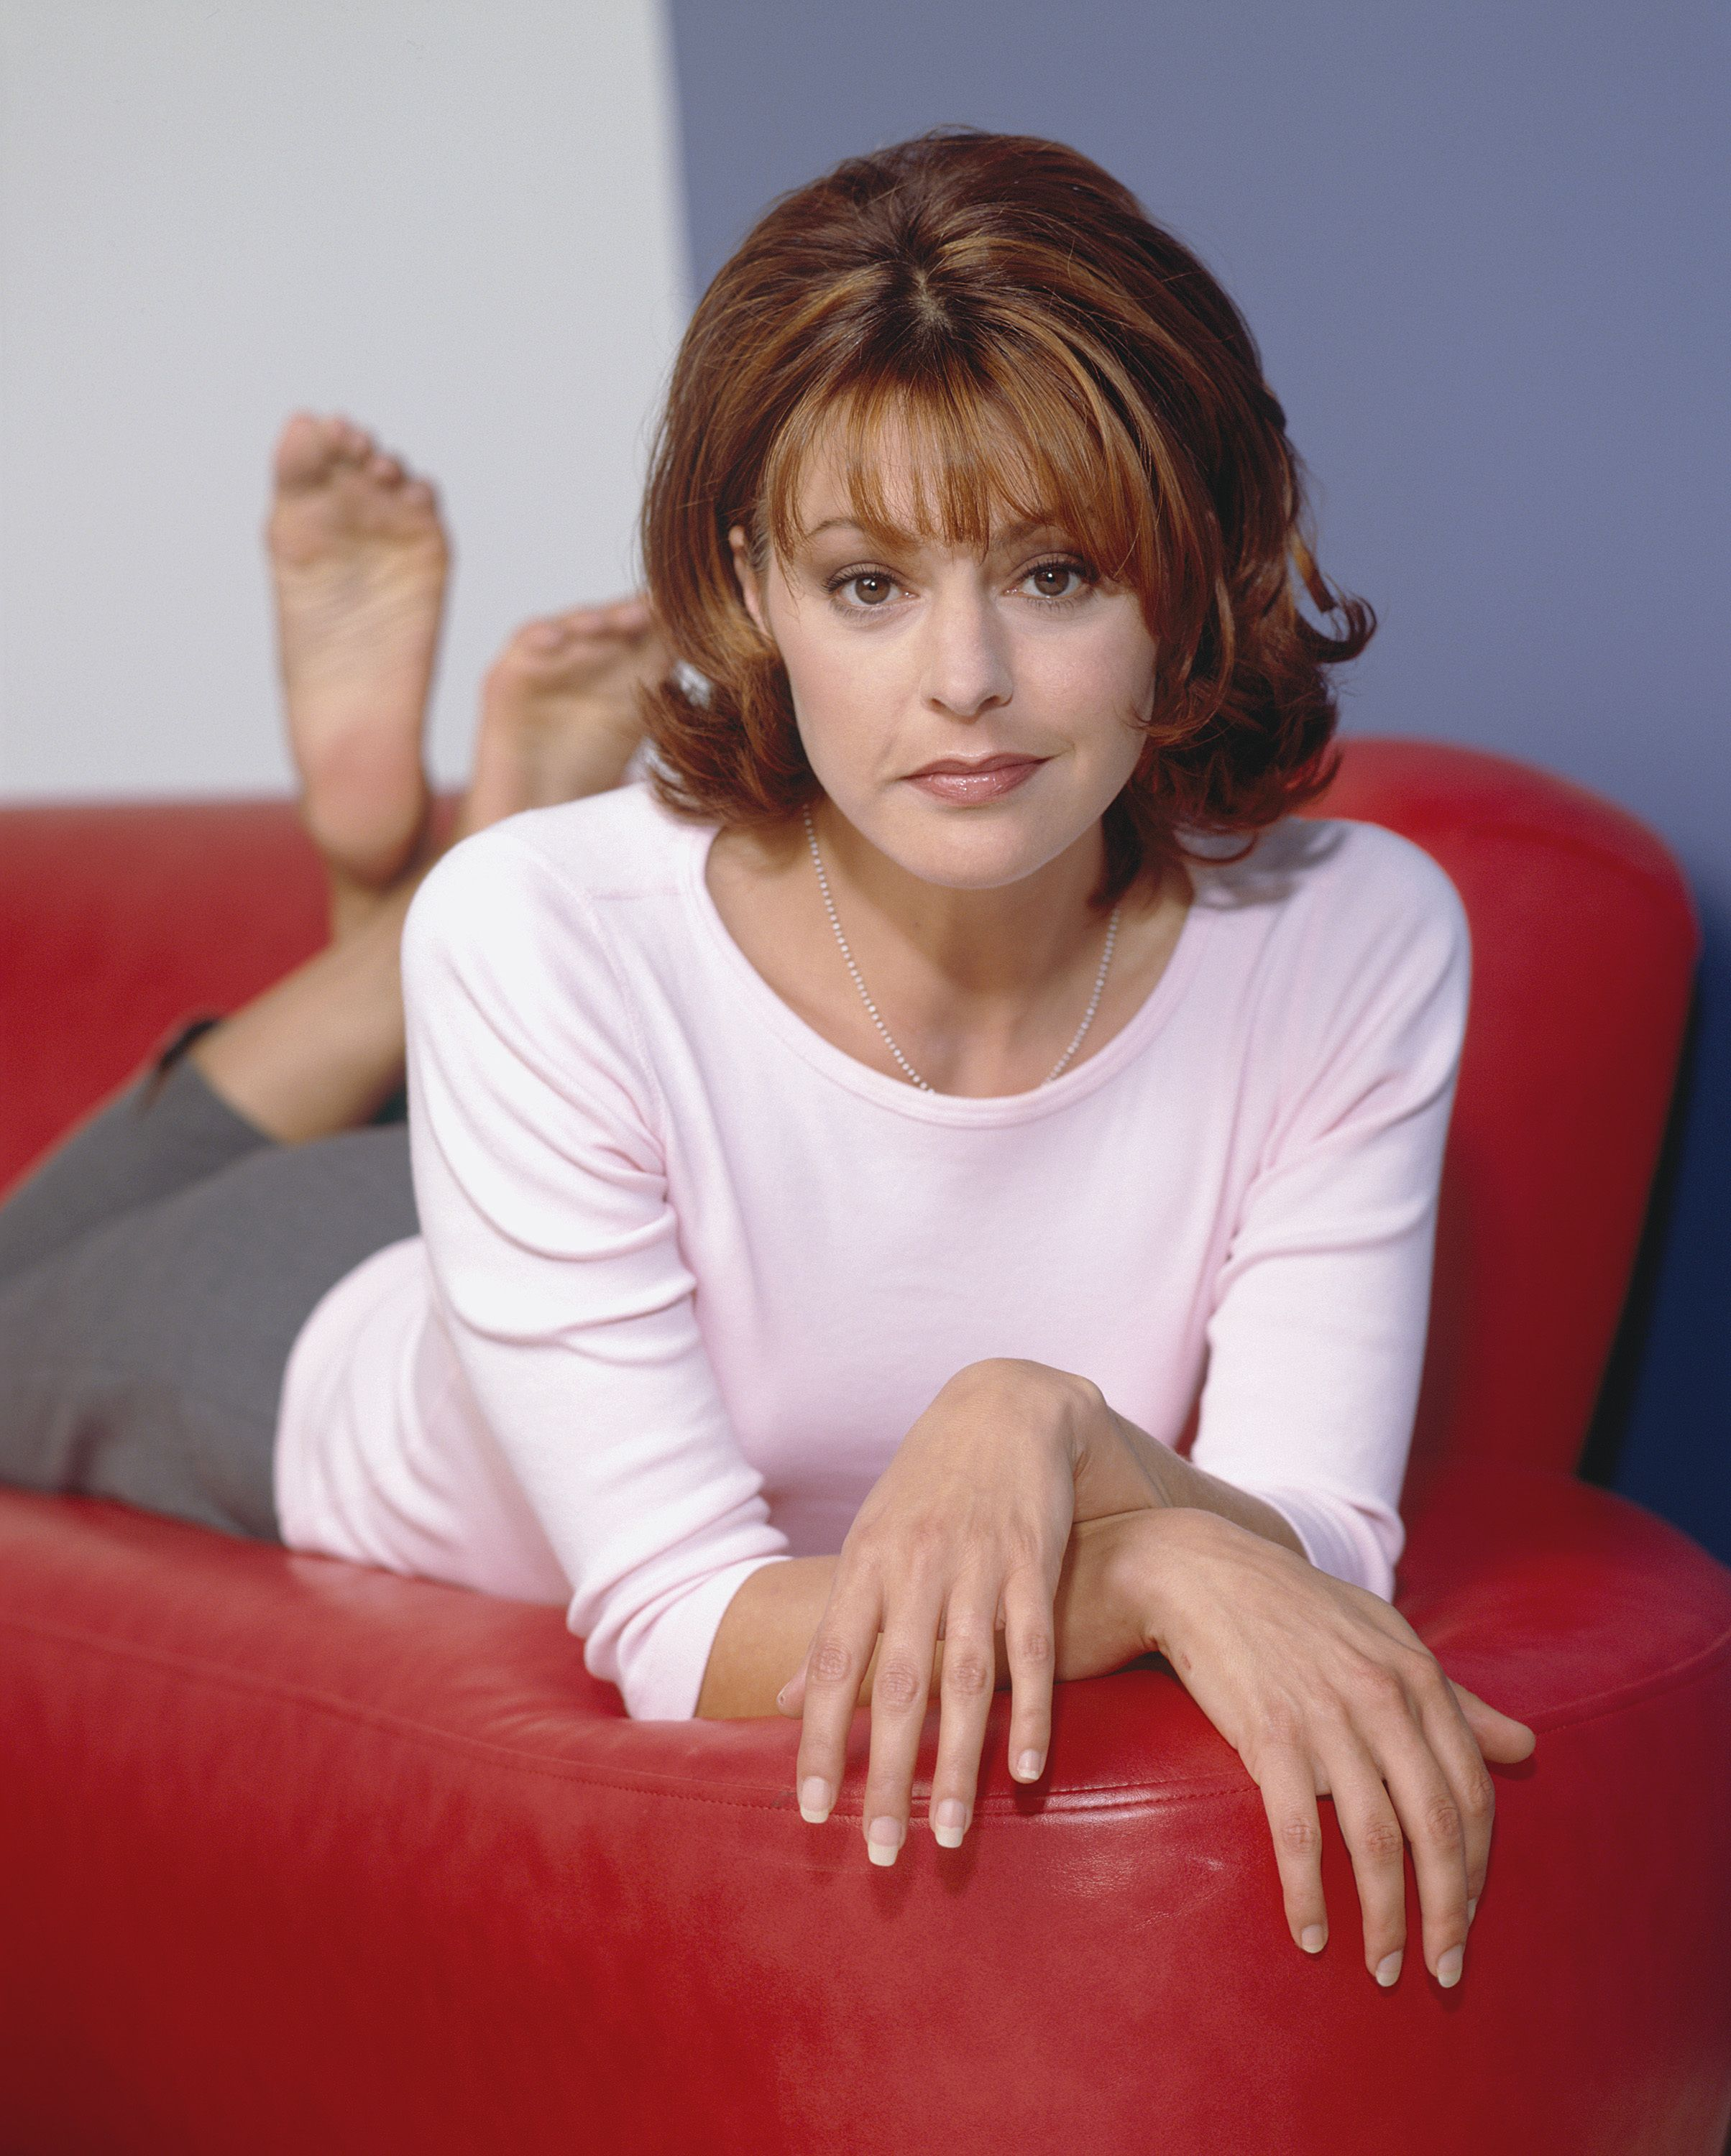 847eb59be502 Pin by Tom on SEXY BAREFOOT FEMALES | Jane leeves, Daphne moon ...